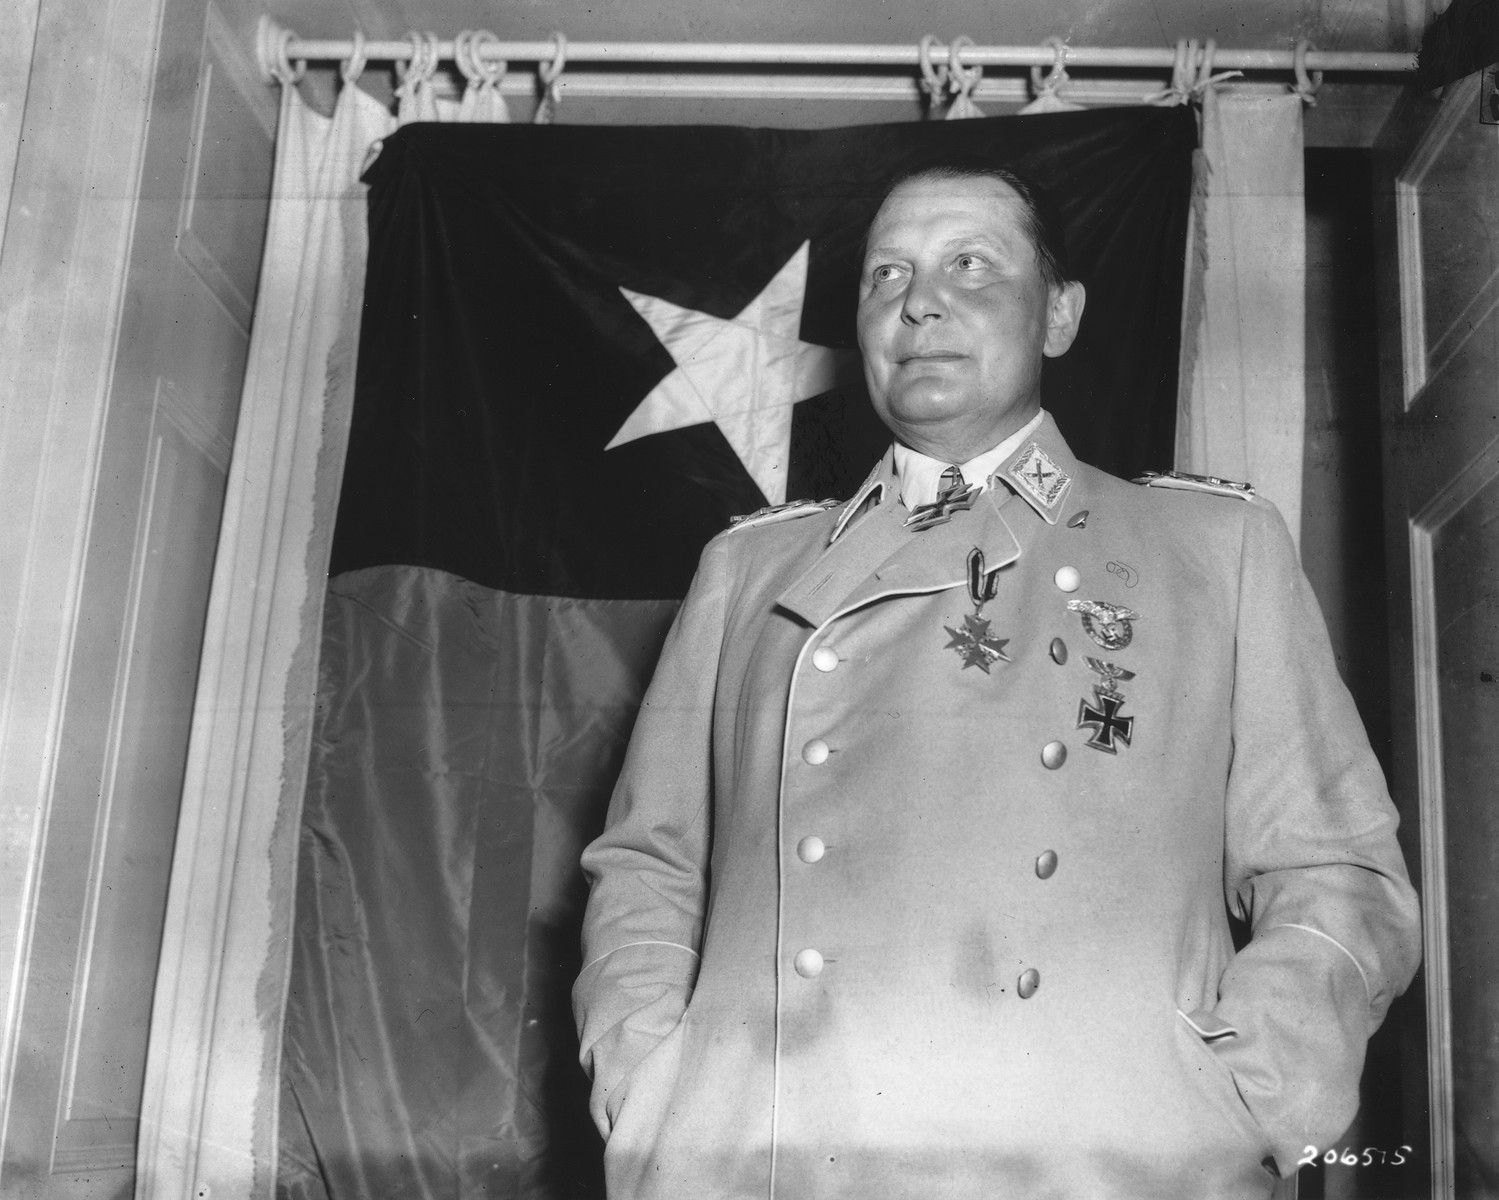 Reich Air Marshal Hermann Goering poses in front of the flag of the U.S. 36th Division at a castle near Kitzbuehel, Austria.  Goering was captured after being held prisoner by the SS at Berchtesgaden.  Hitler issued orders for his execution.